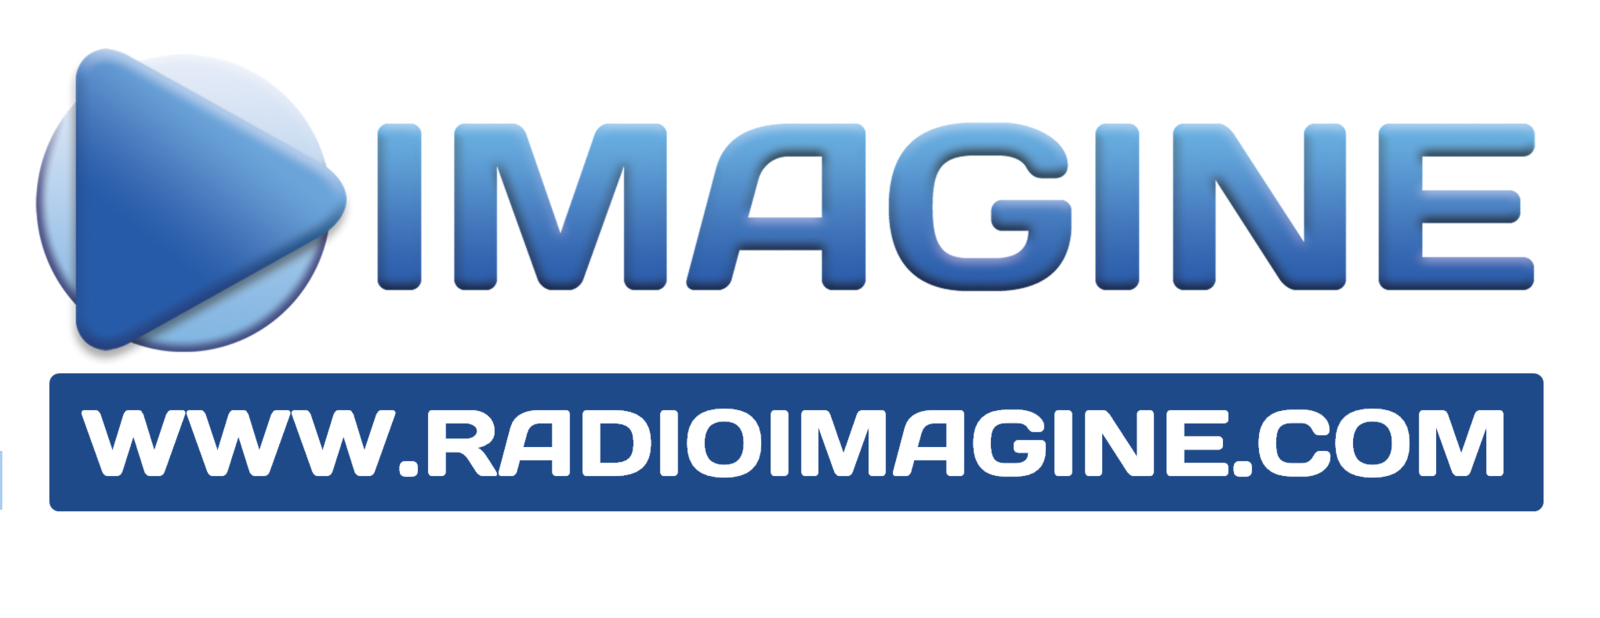 Radio Imagine - Interview 05 : Les Elus Haut-Alpins sur le Giro 2016